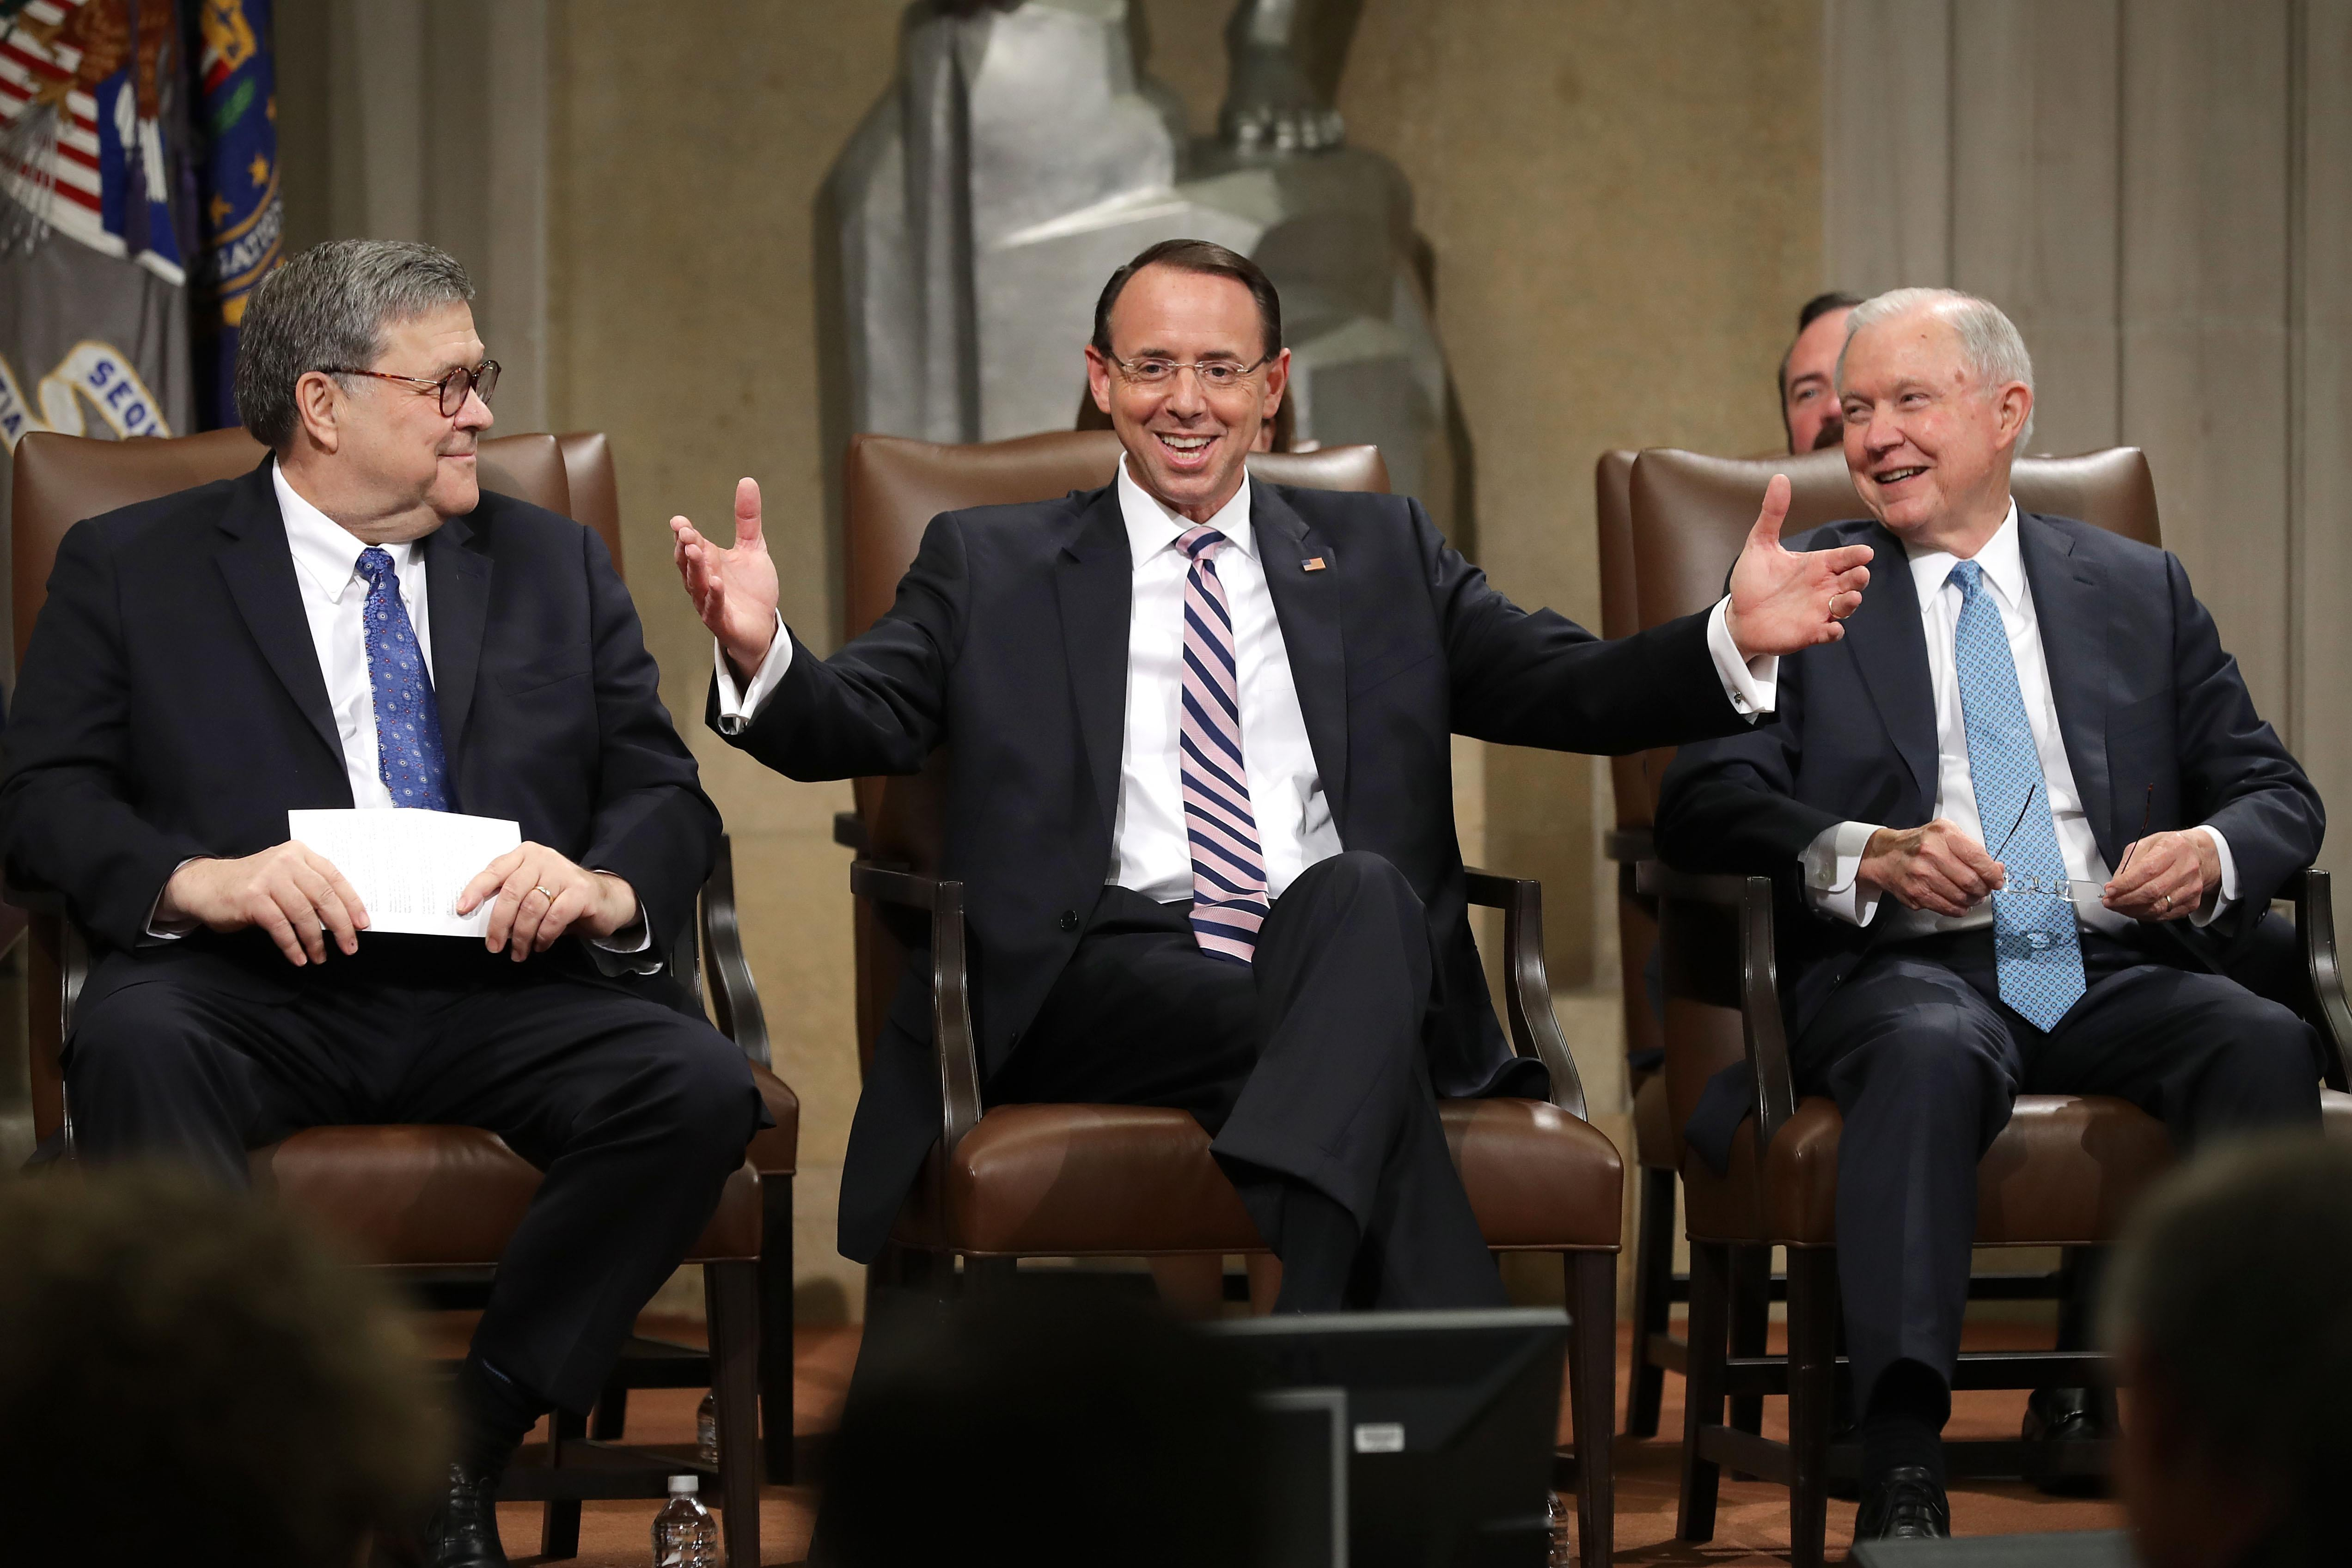 Attorney General William Barr (L) and former Attorney General Jeff Sessions (R) join Deputy Attorney General Rod Rosenstein for his farewell ceremony May 09, 2019 in Washington, DC.